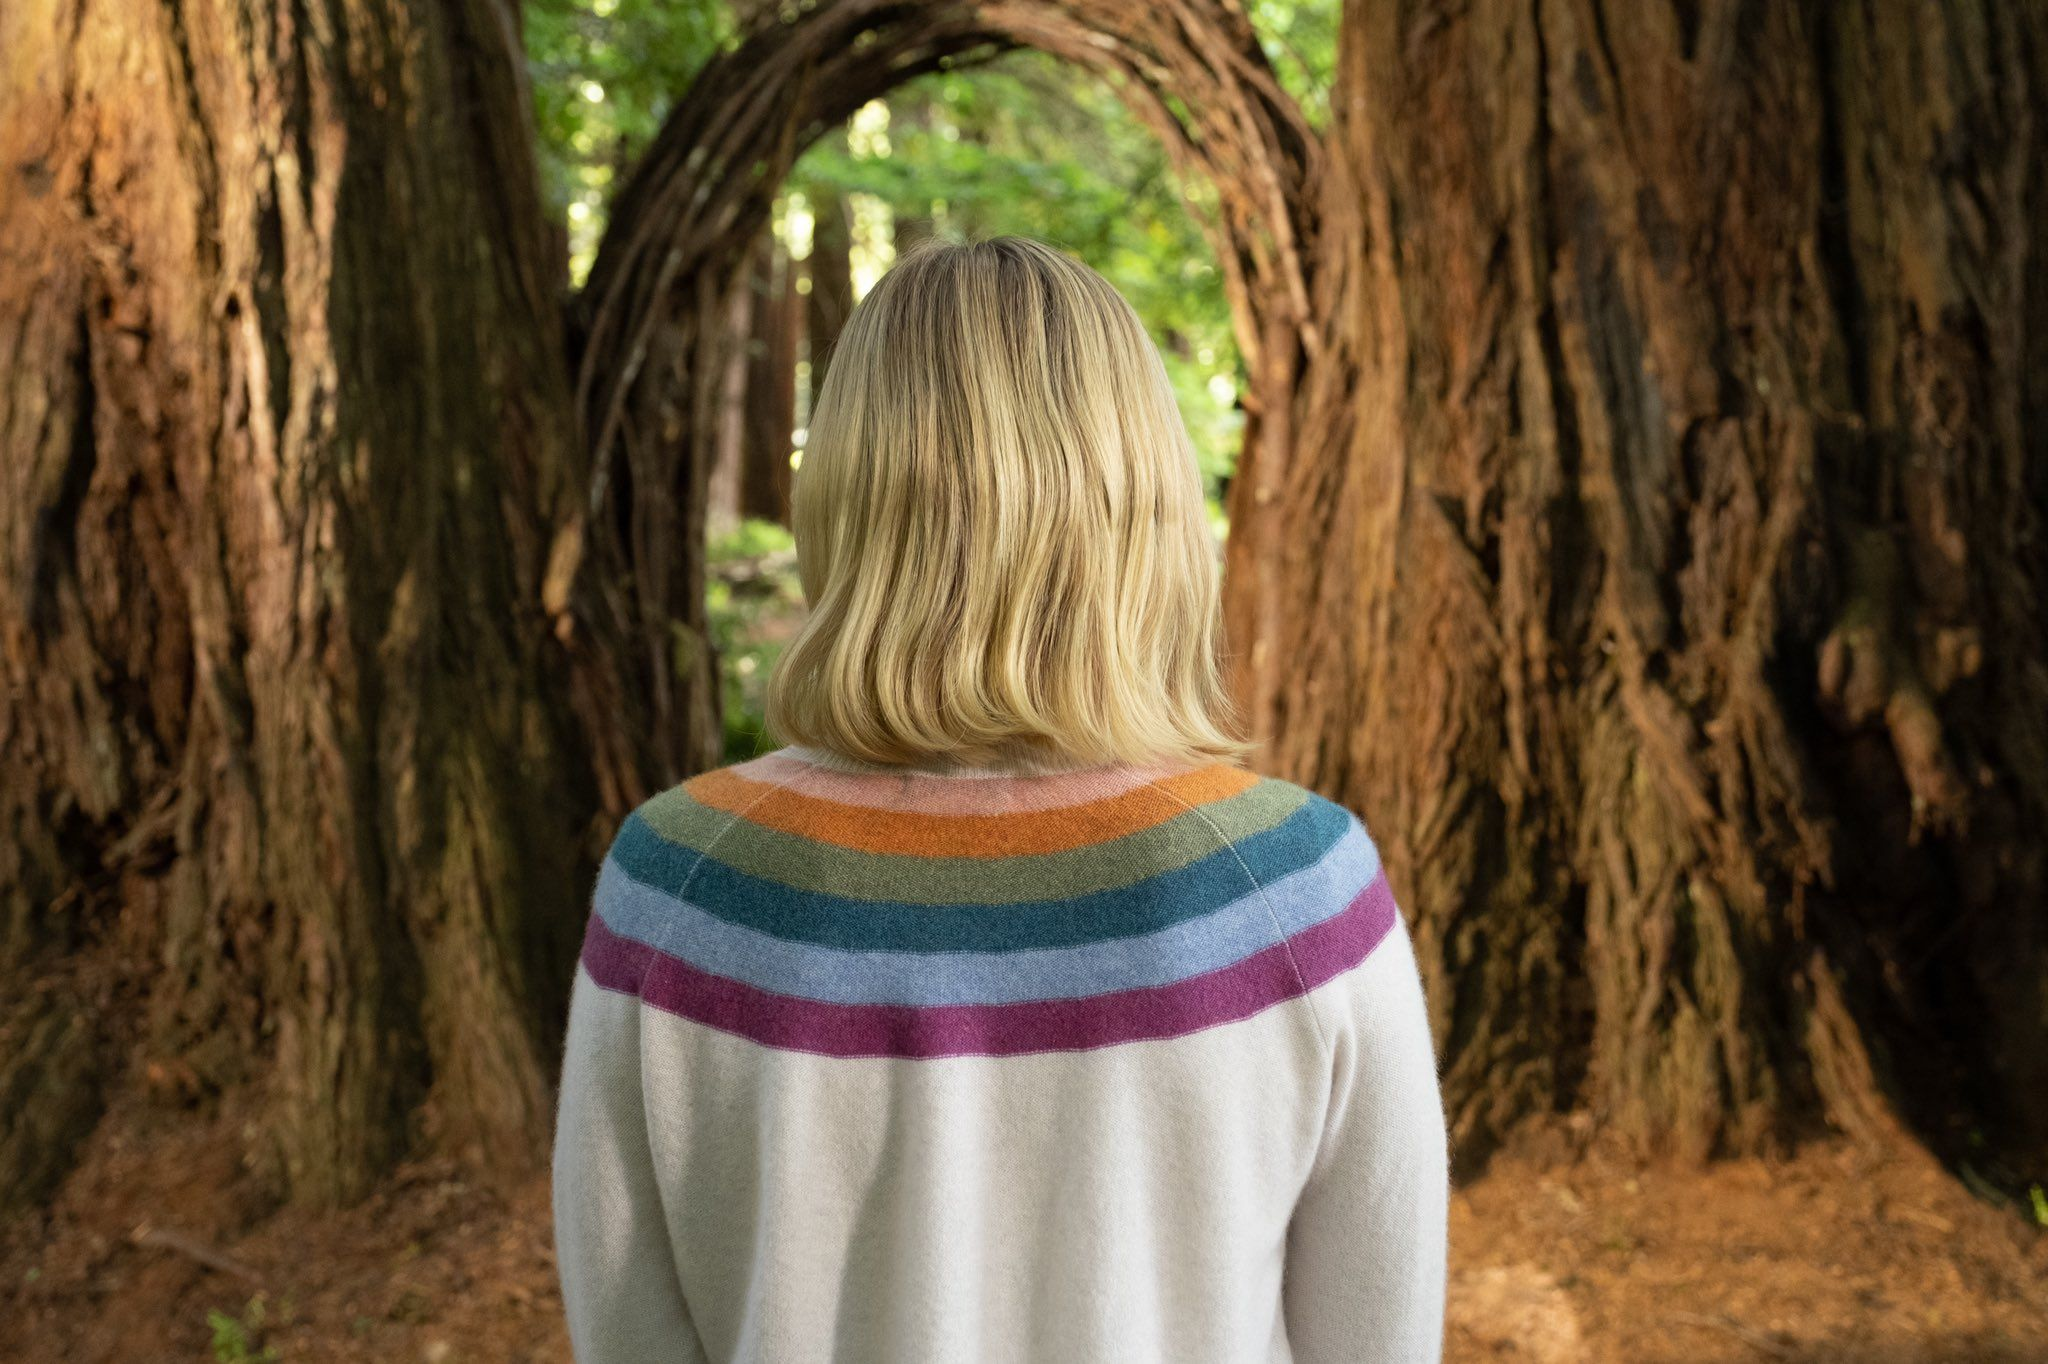 The Good Place Series Finale Explained: An Afterlife of ...